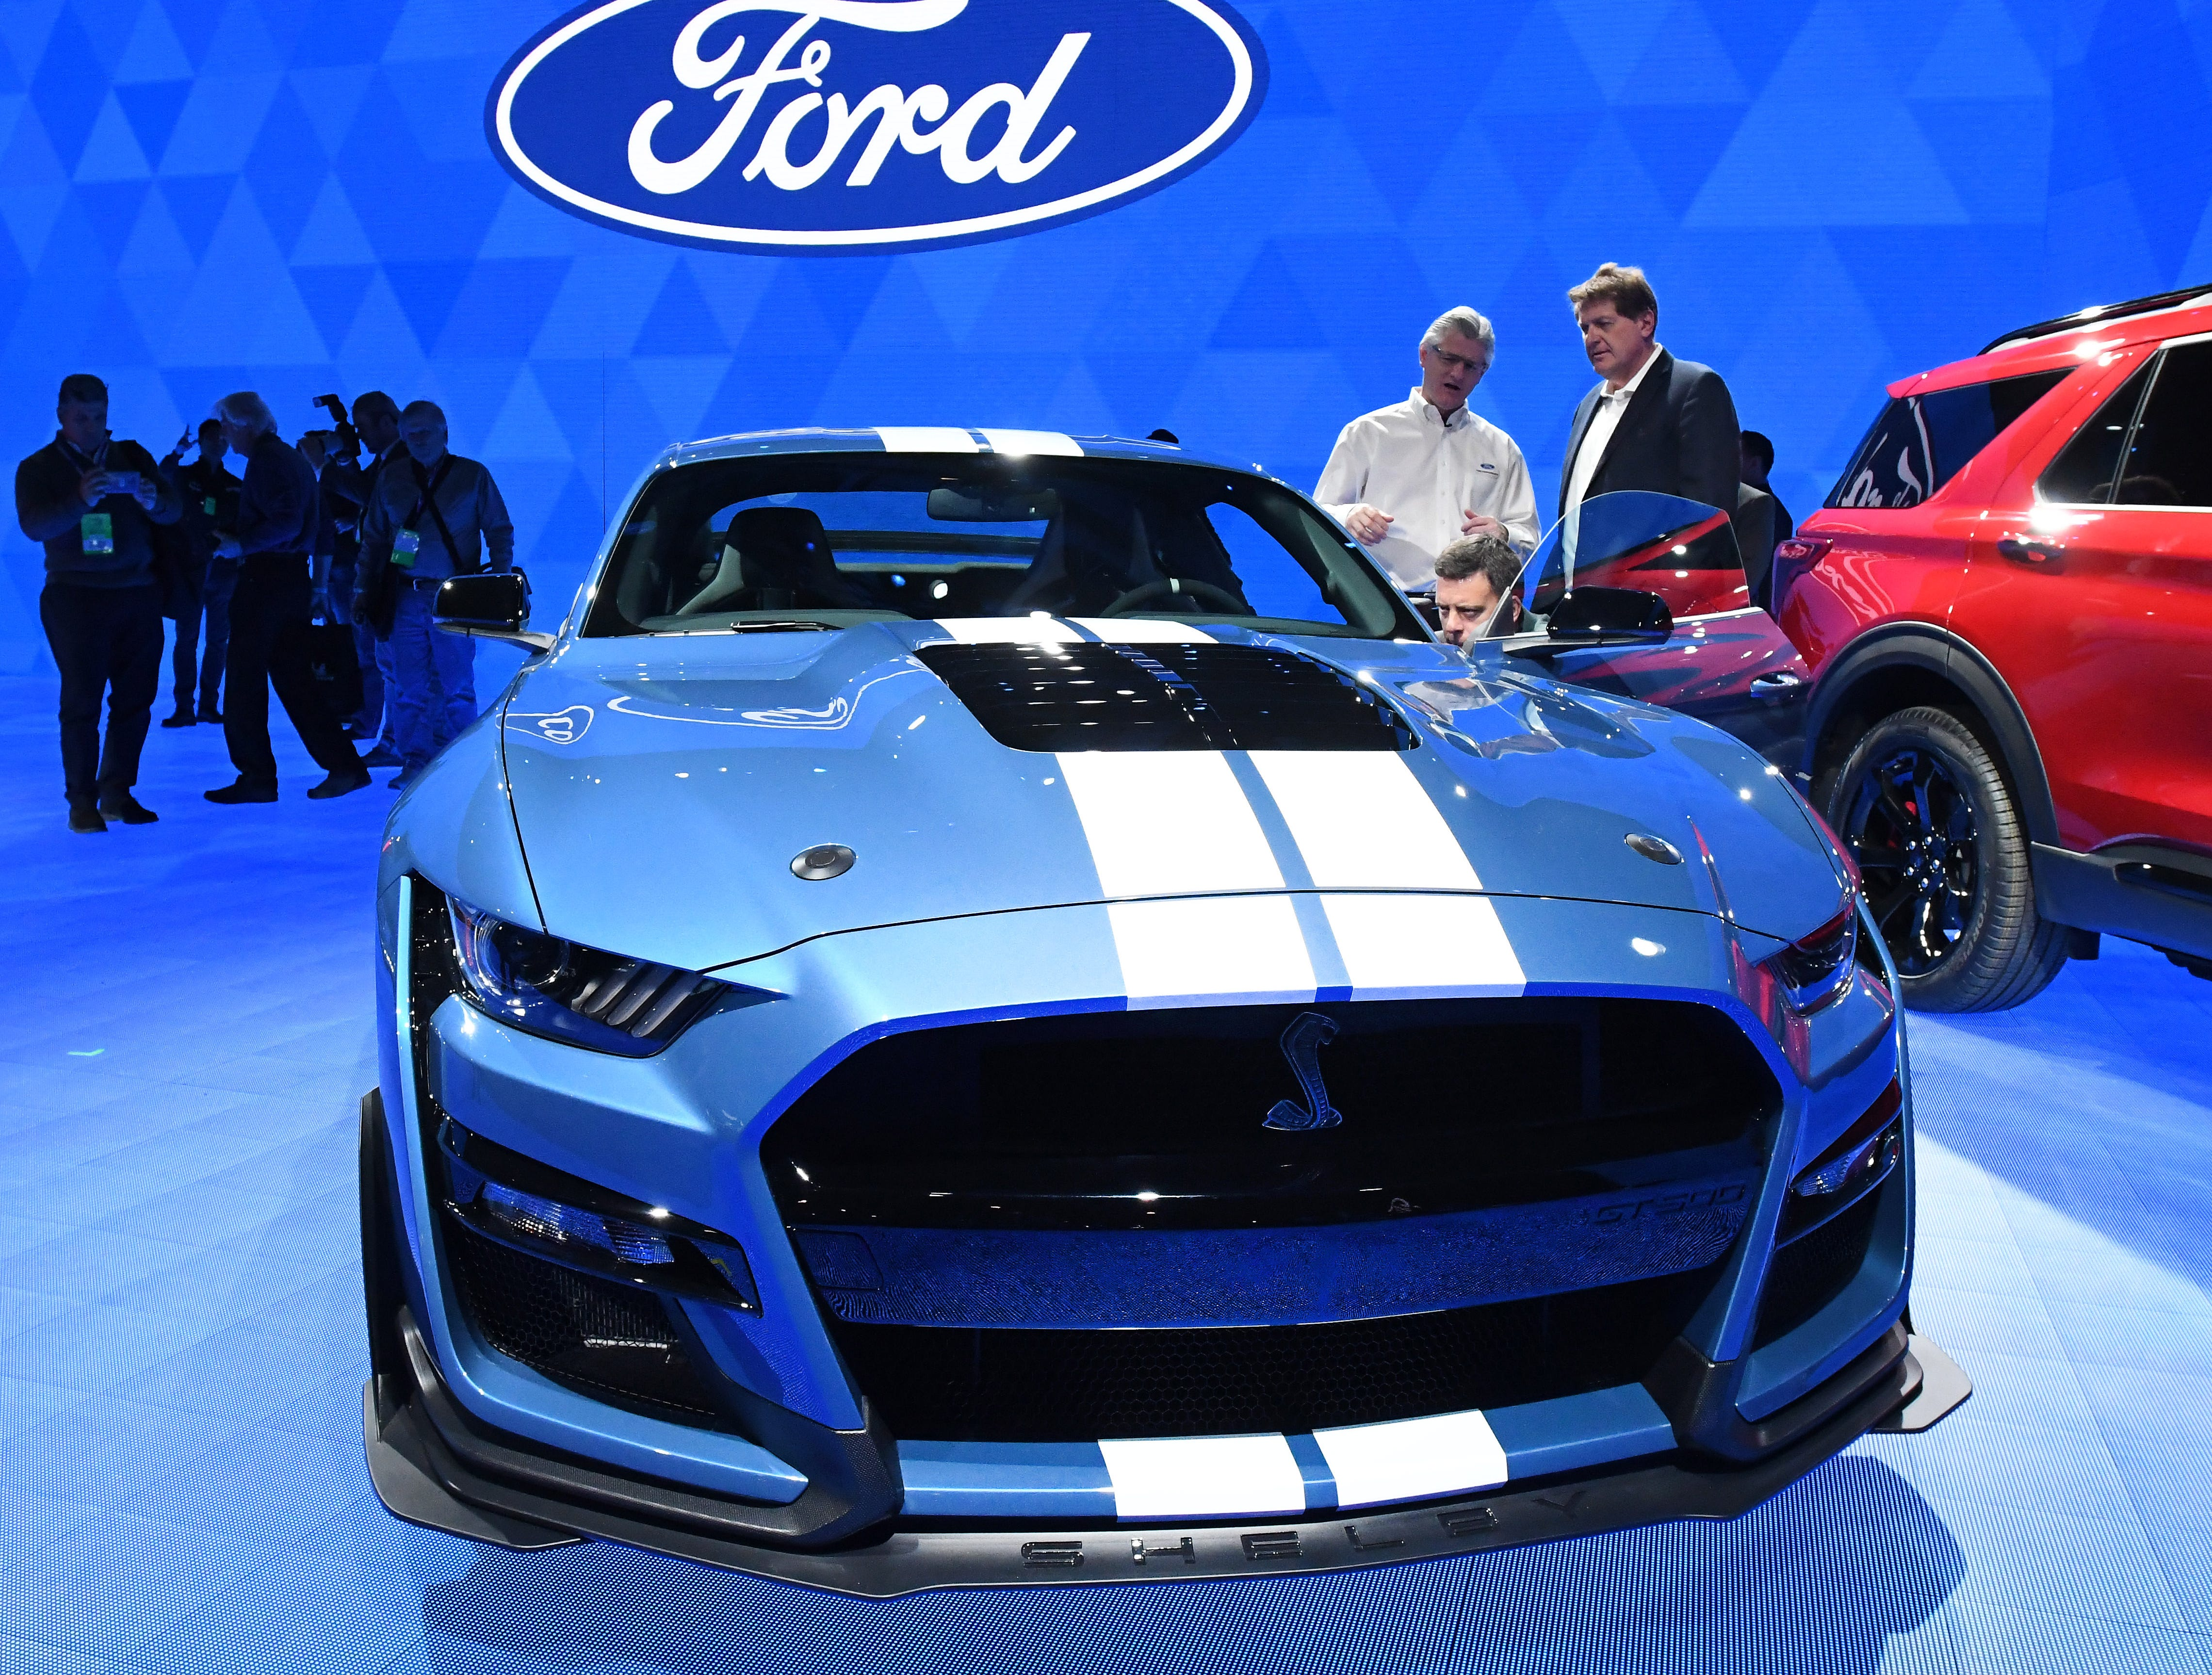 Members of the media look over the Mustang Shelby GT500 at the North American International Auto Show media preview day at Cobo Center in Detroit on Monday, Jan. 14, 2019.